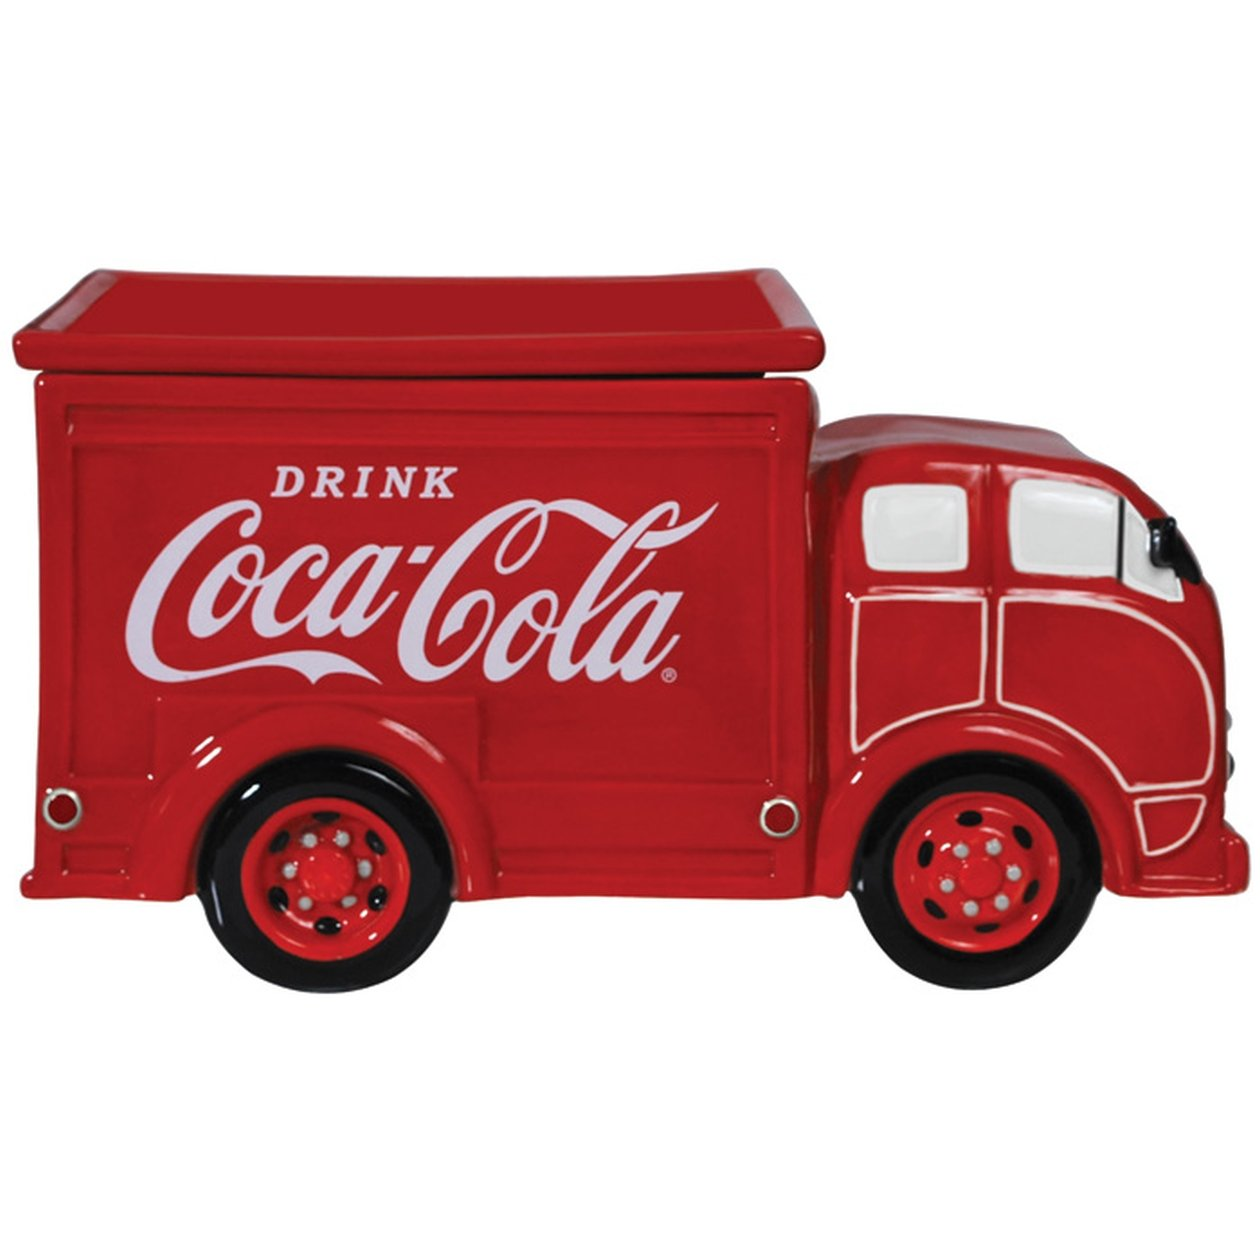 Westland Ceramic Cookie Jar, 6.5-Inch, Coca-Cola Delivery Truck